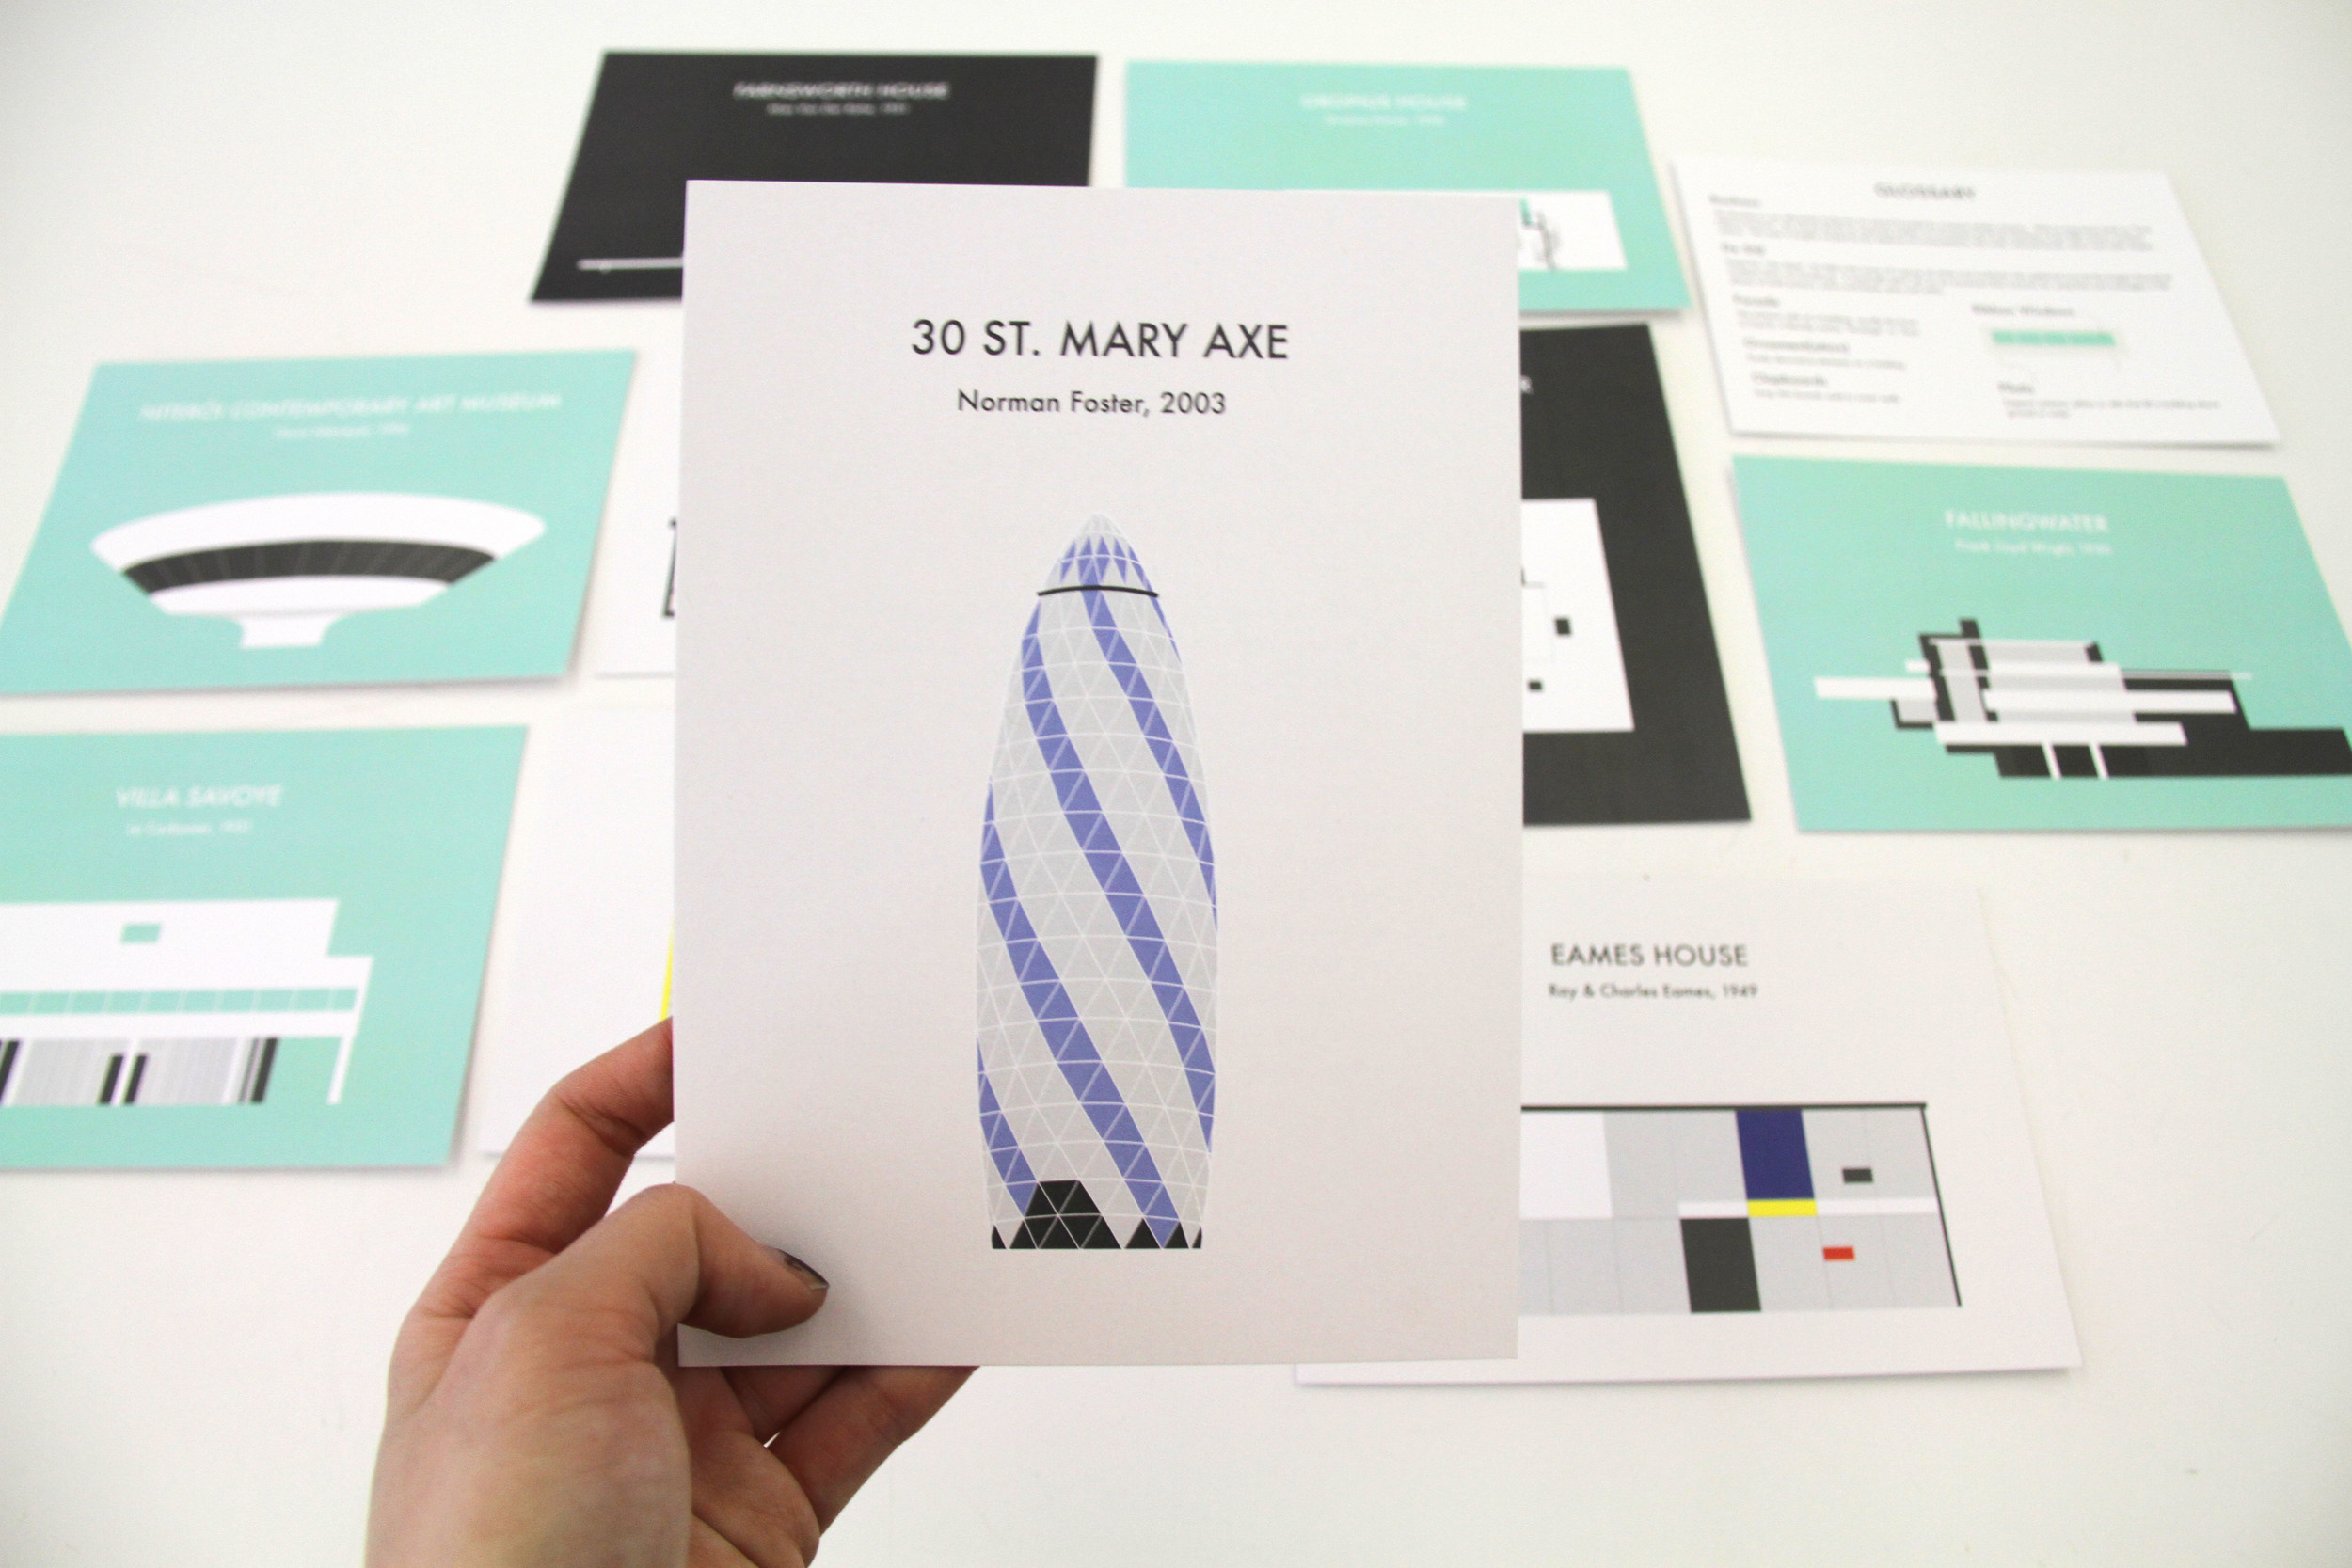 For architecture fans, Archigrams work well as prints and visual references.